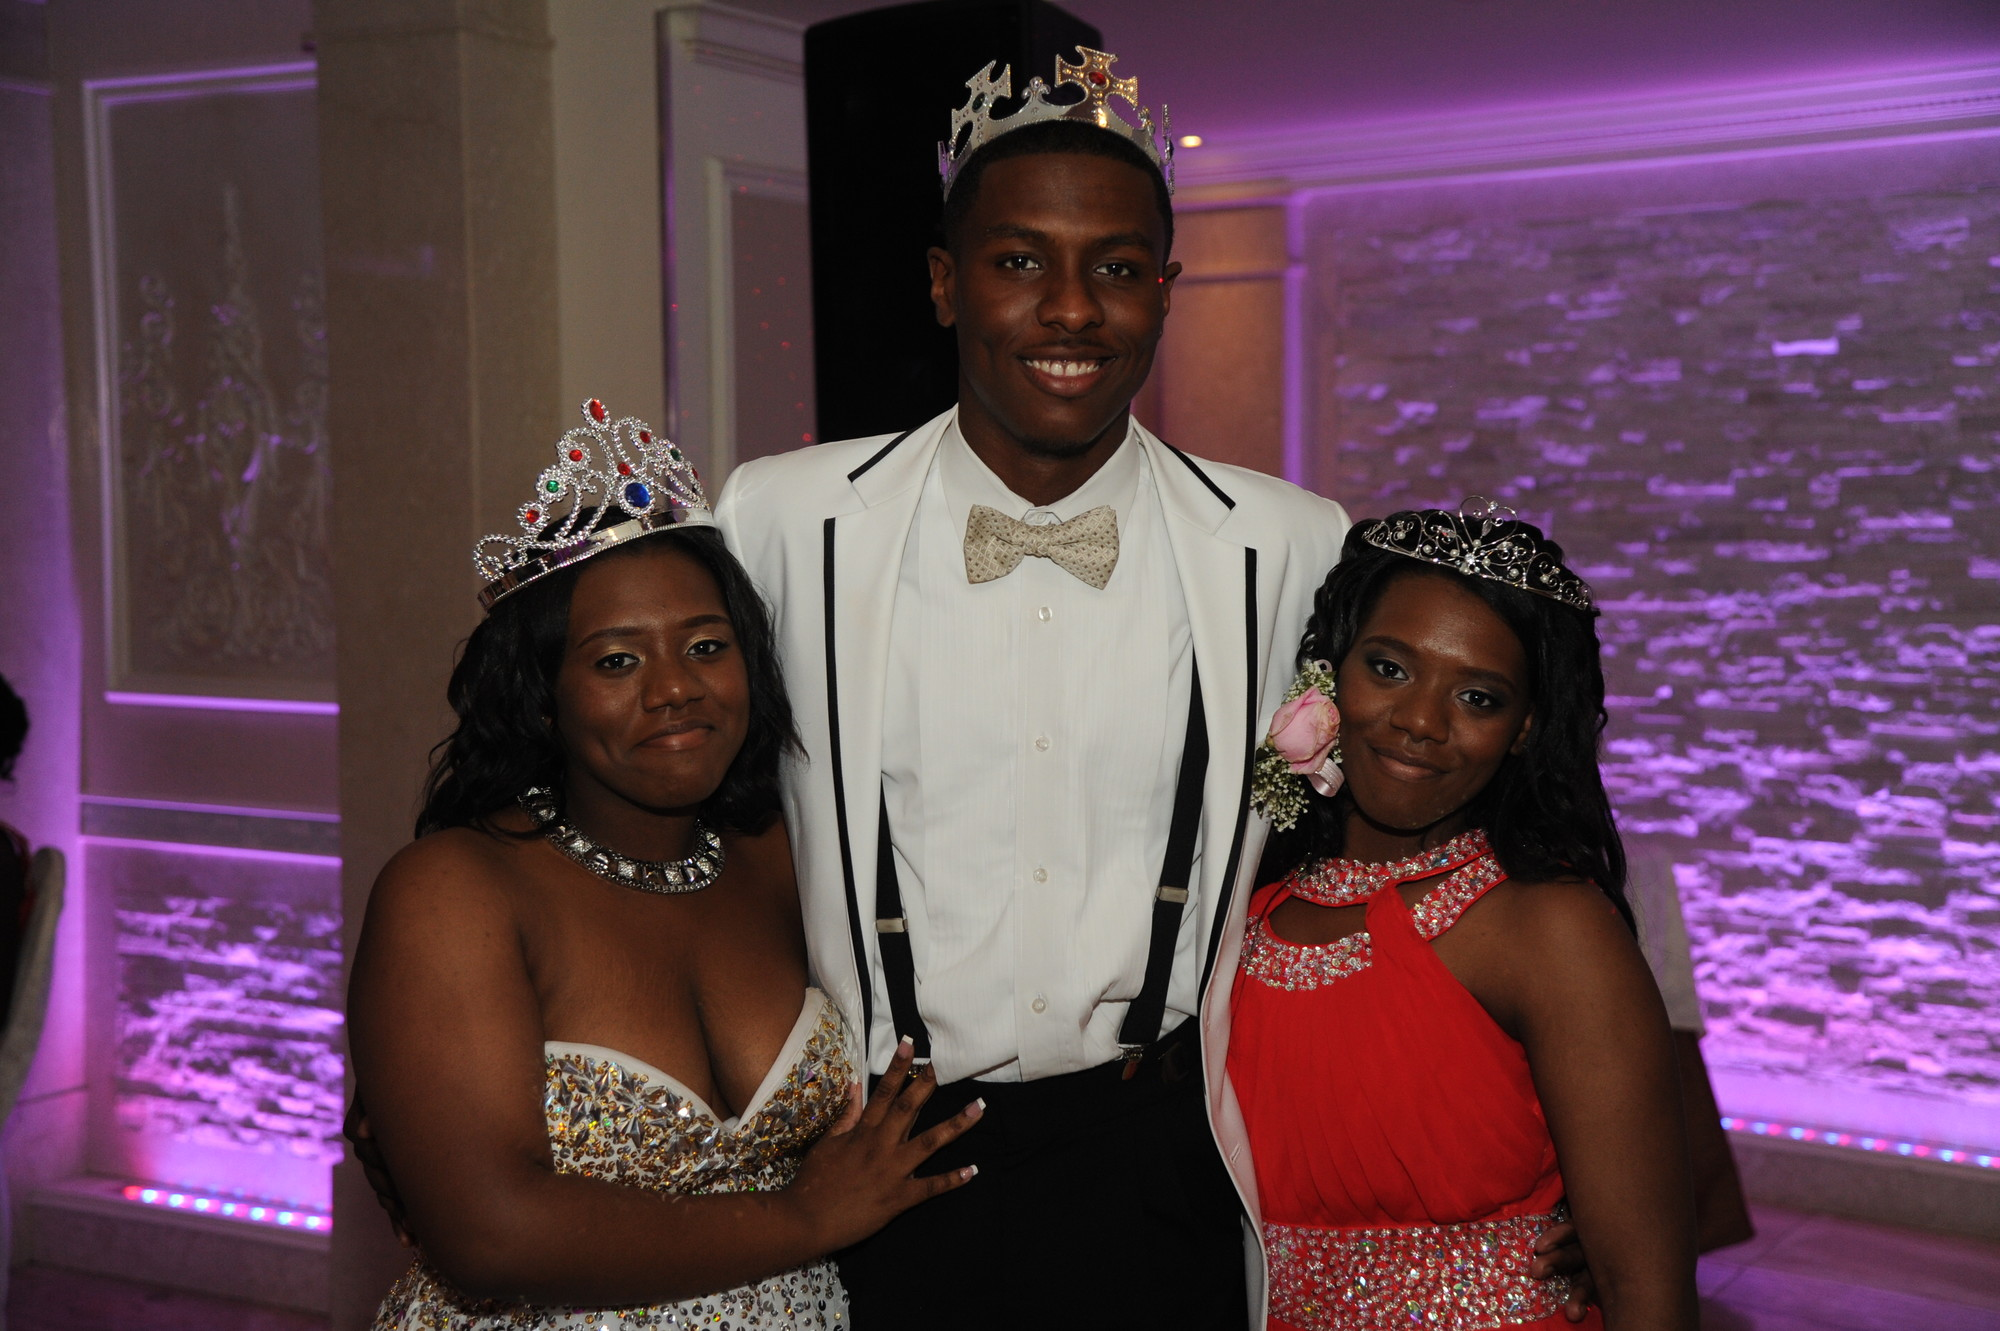 Prom Queens Kayla and Anethyst Hope, Prom King Mekhi Grindley.